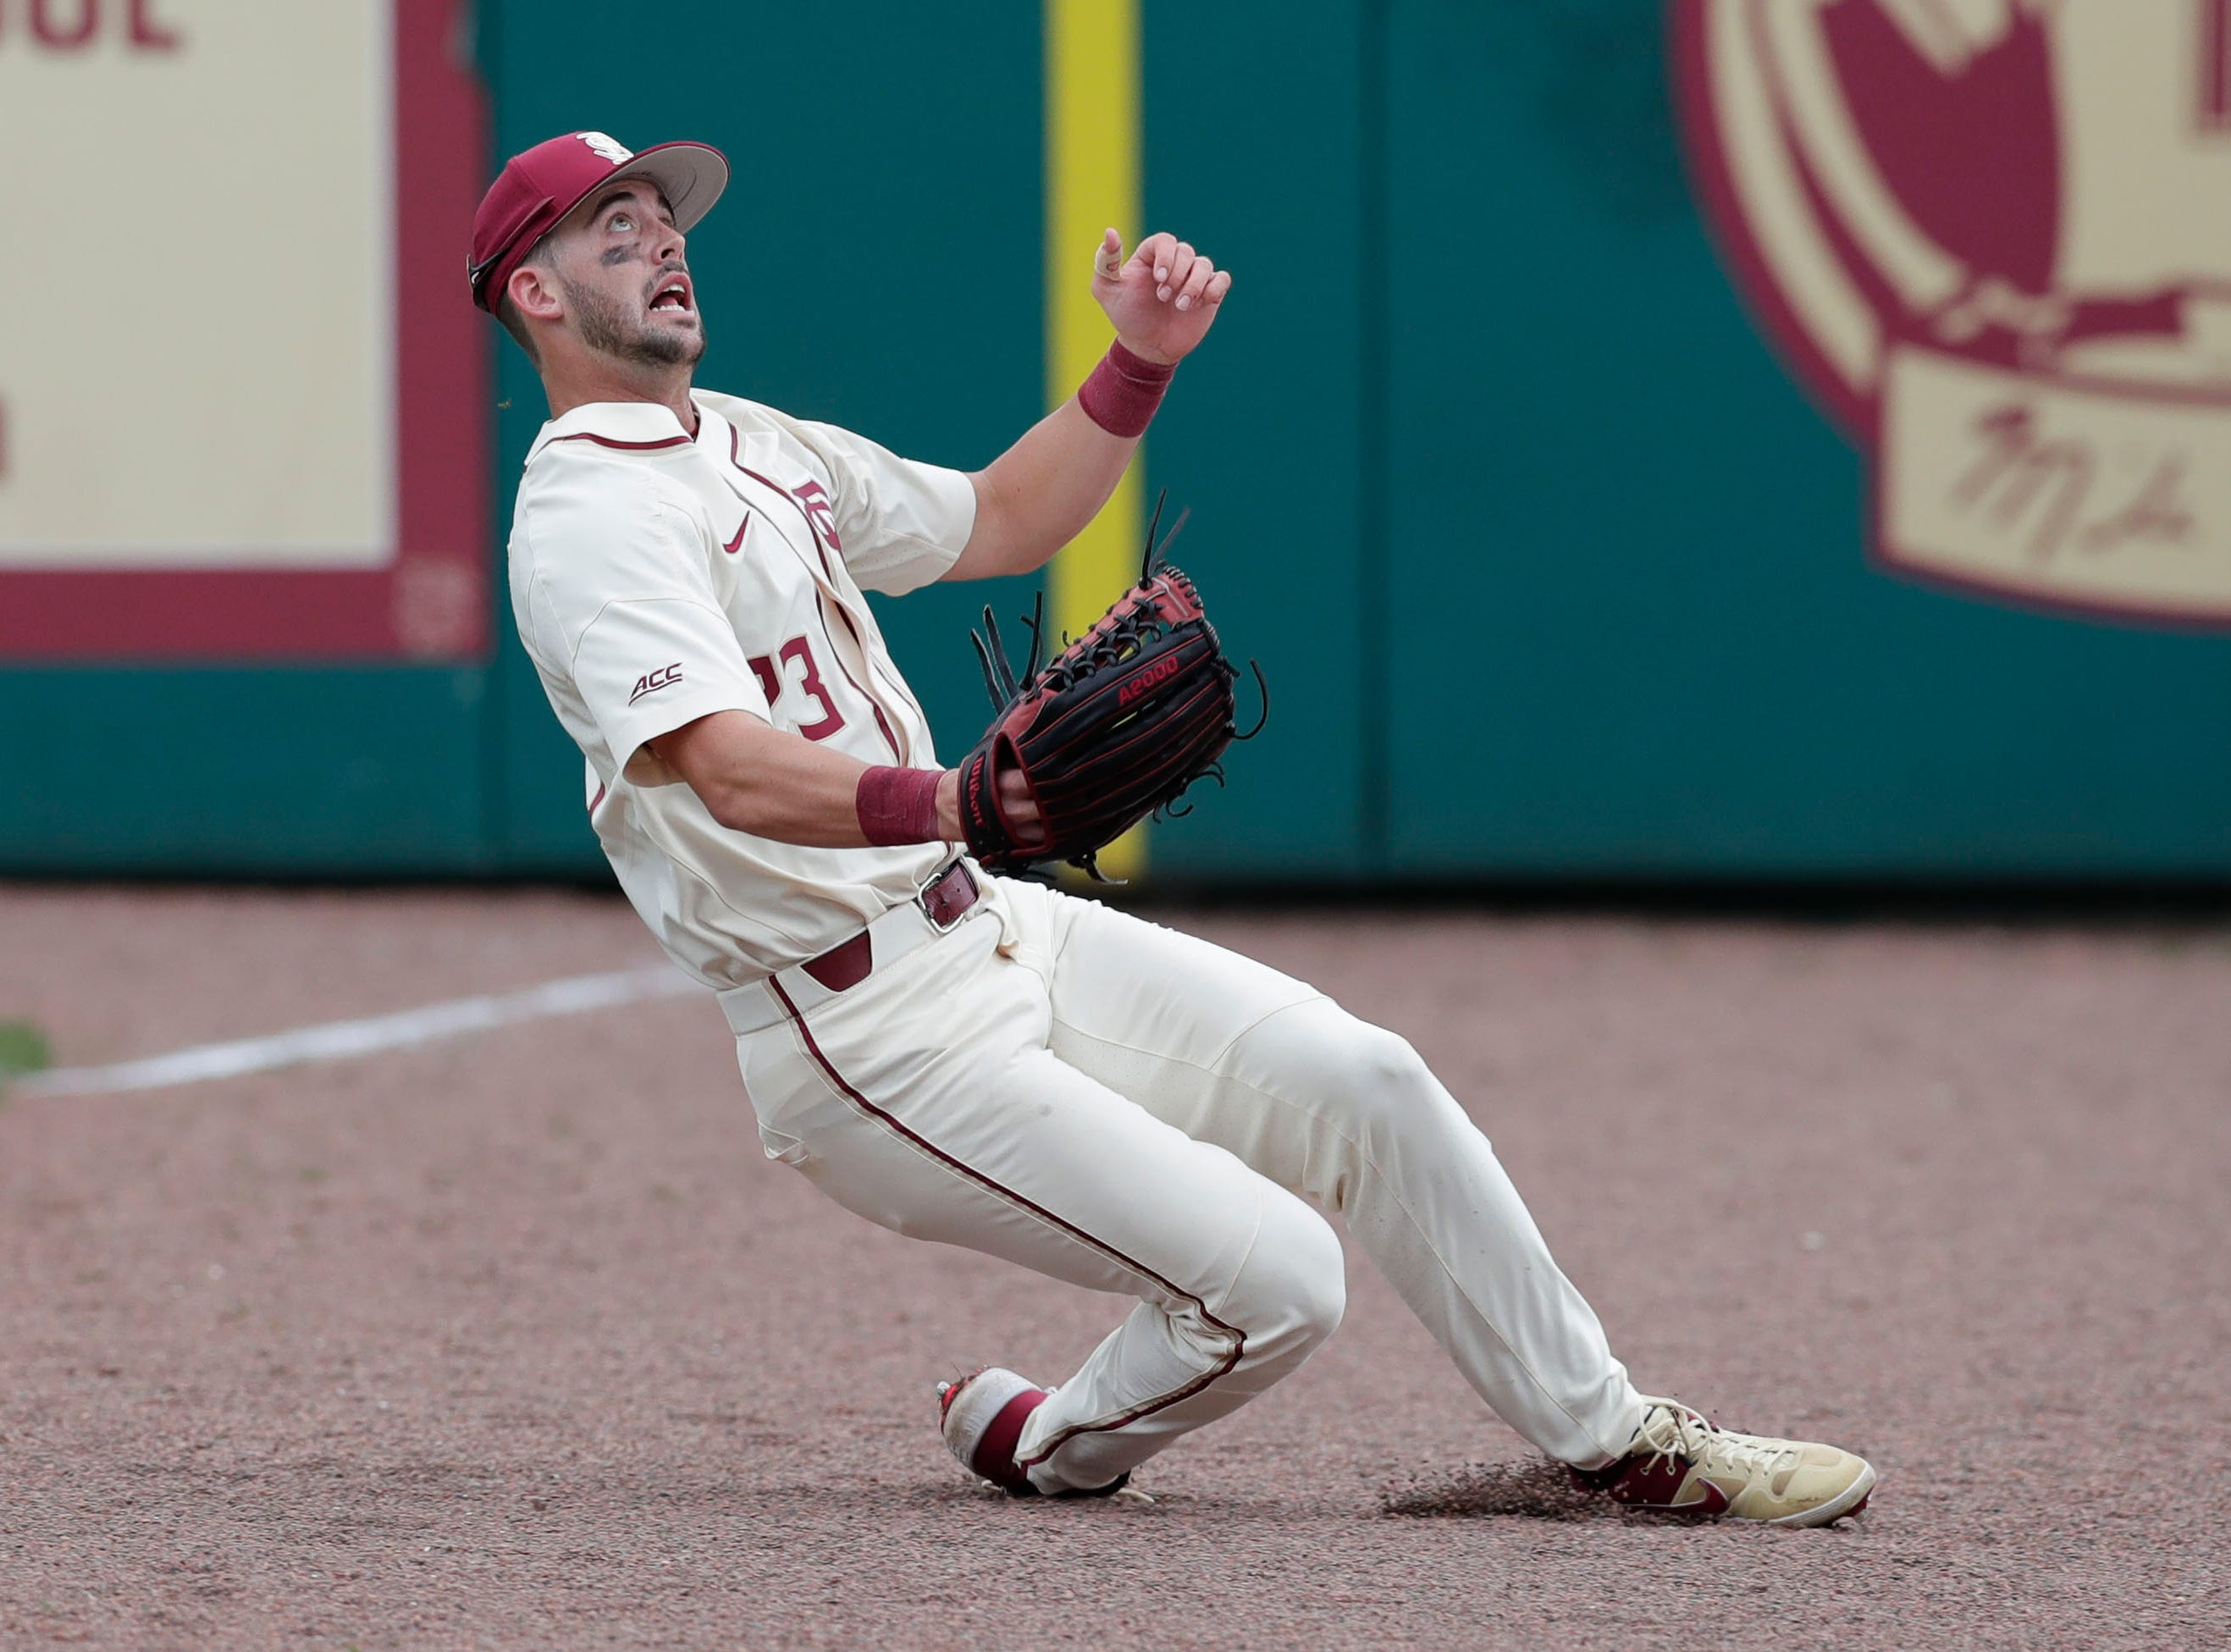 Florida State Seminoles outfielder/left handed pitcher Reese Albert (23) slides as he tries to catch a foul ball. tTe Florida State Seminoles host the Maine Black Bears for the second game of the series, Saturday Feb. 16, 2019.